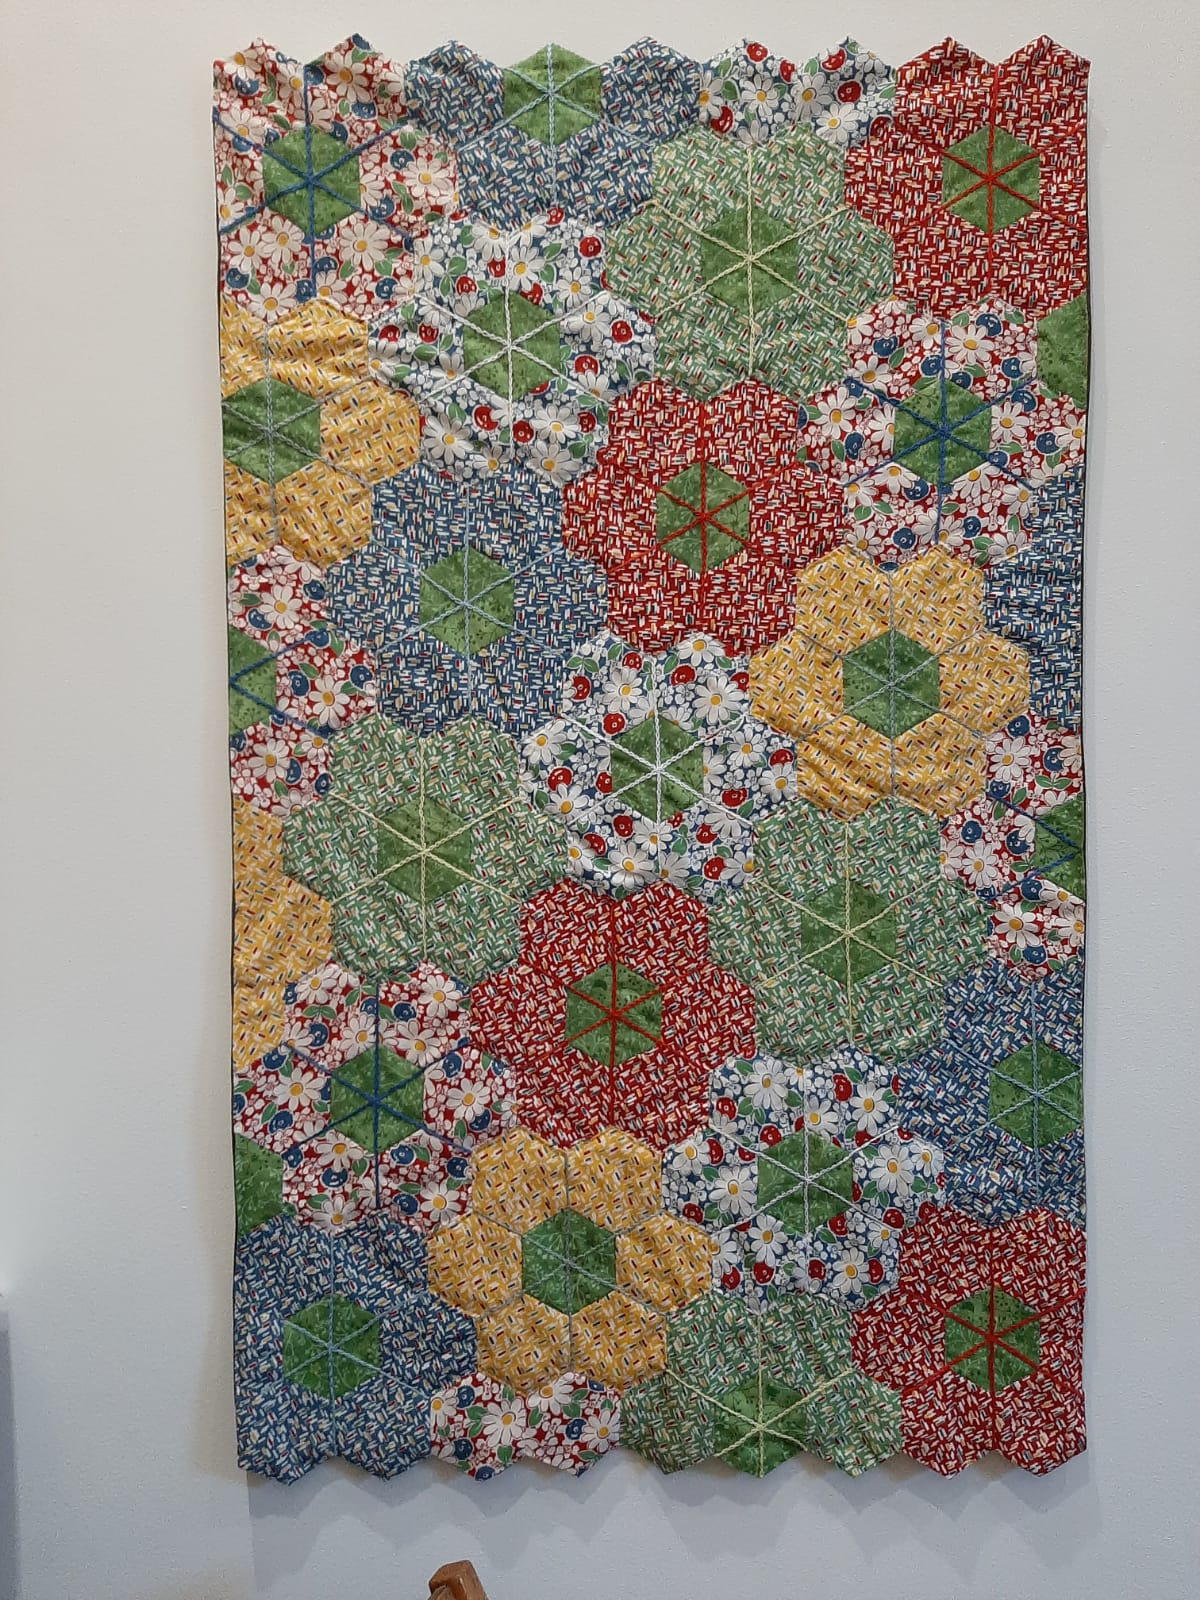 By the Quilting Group